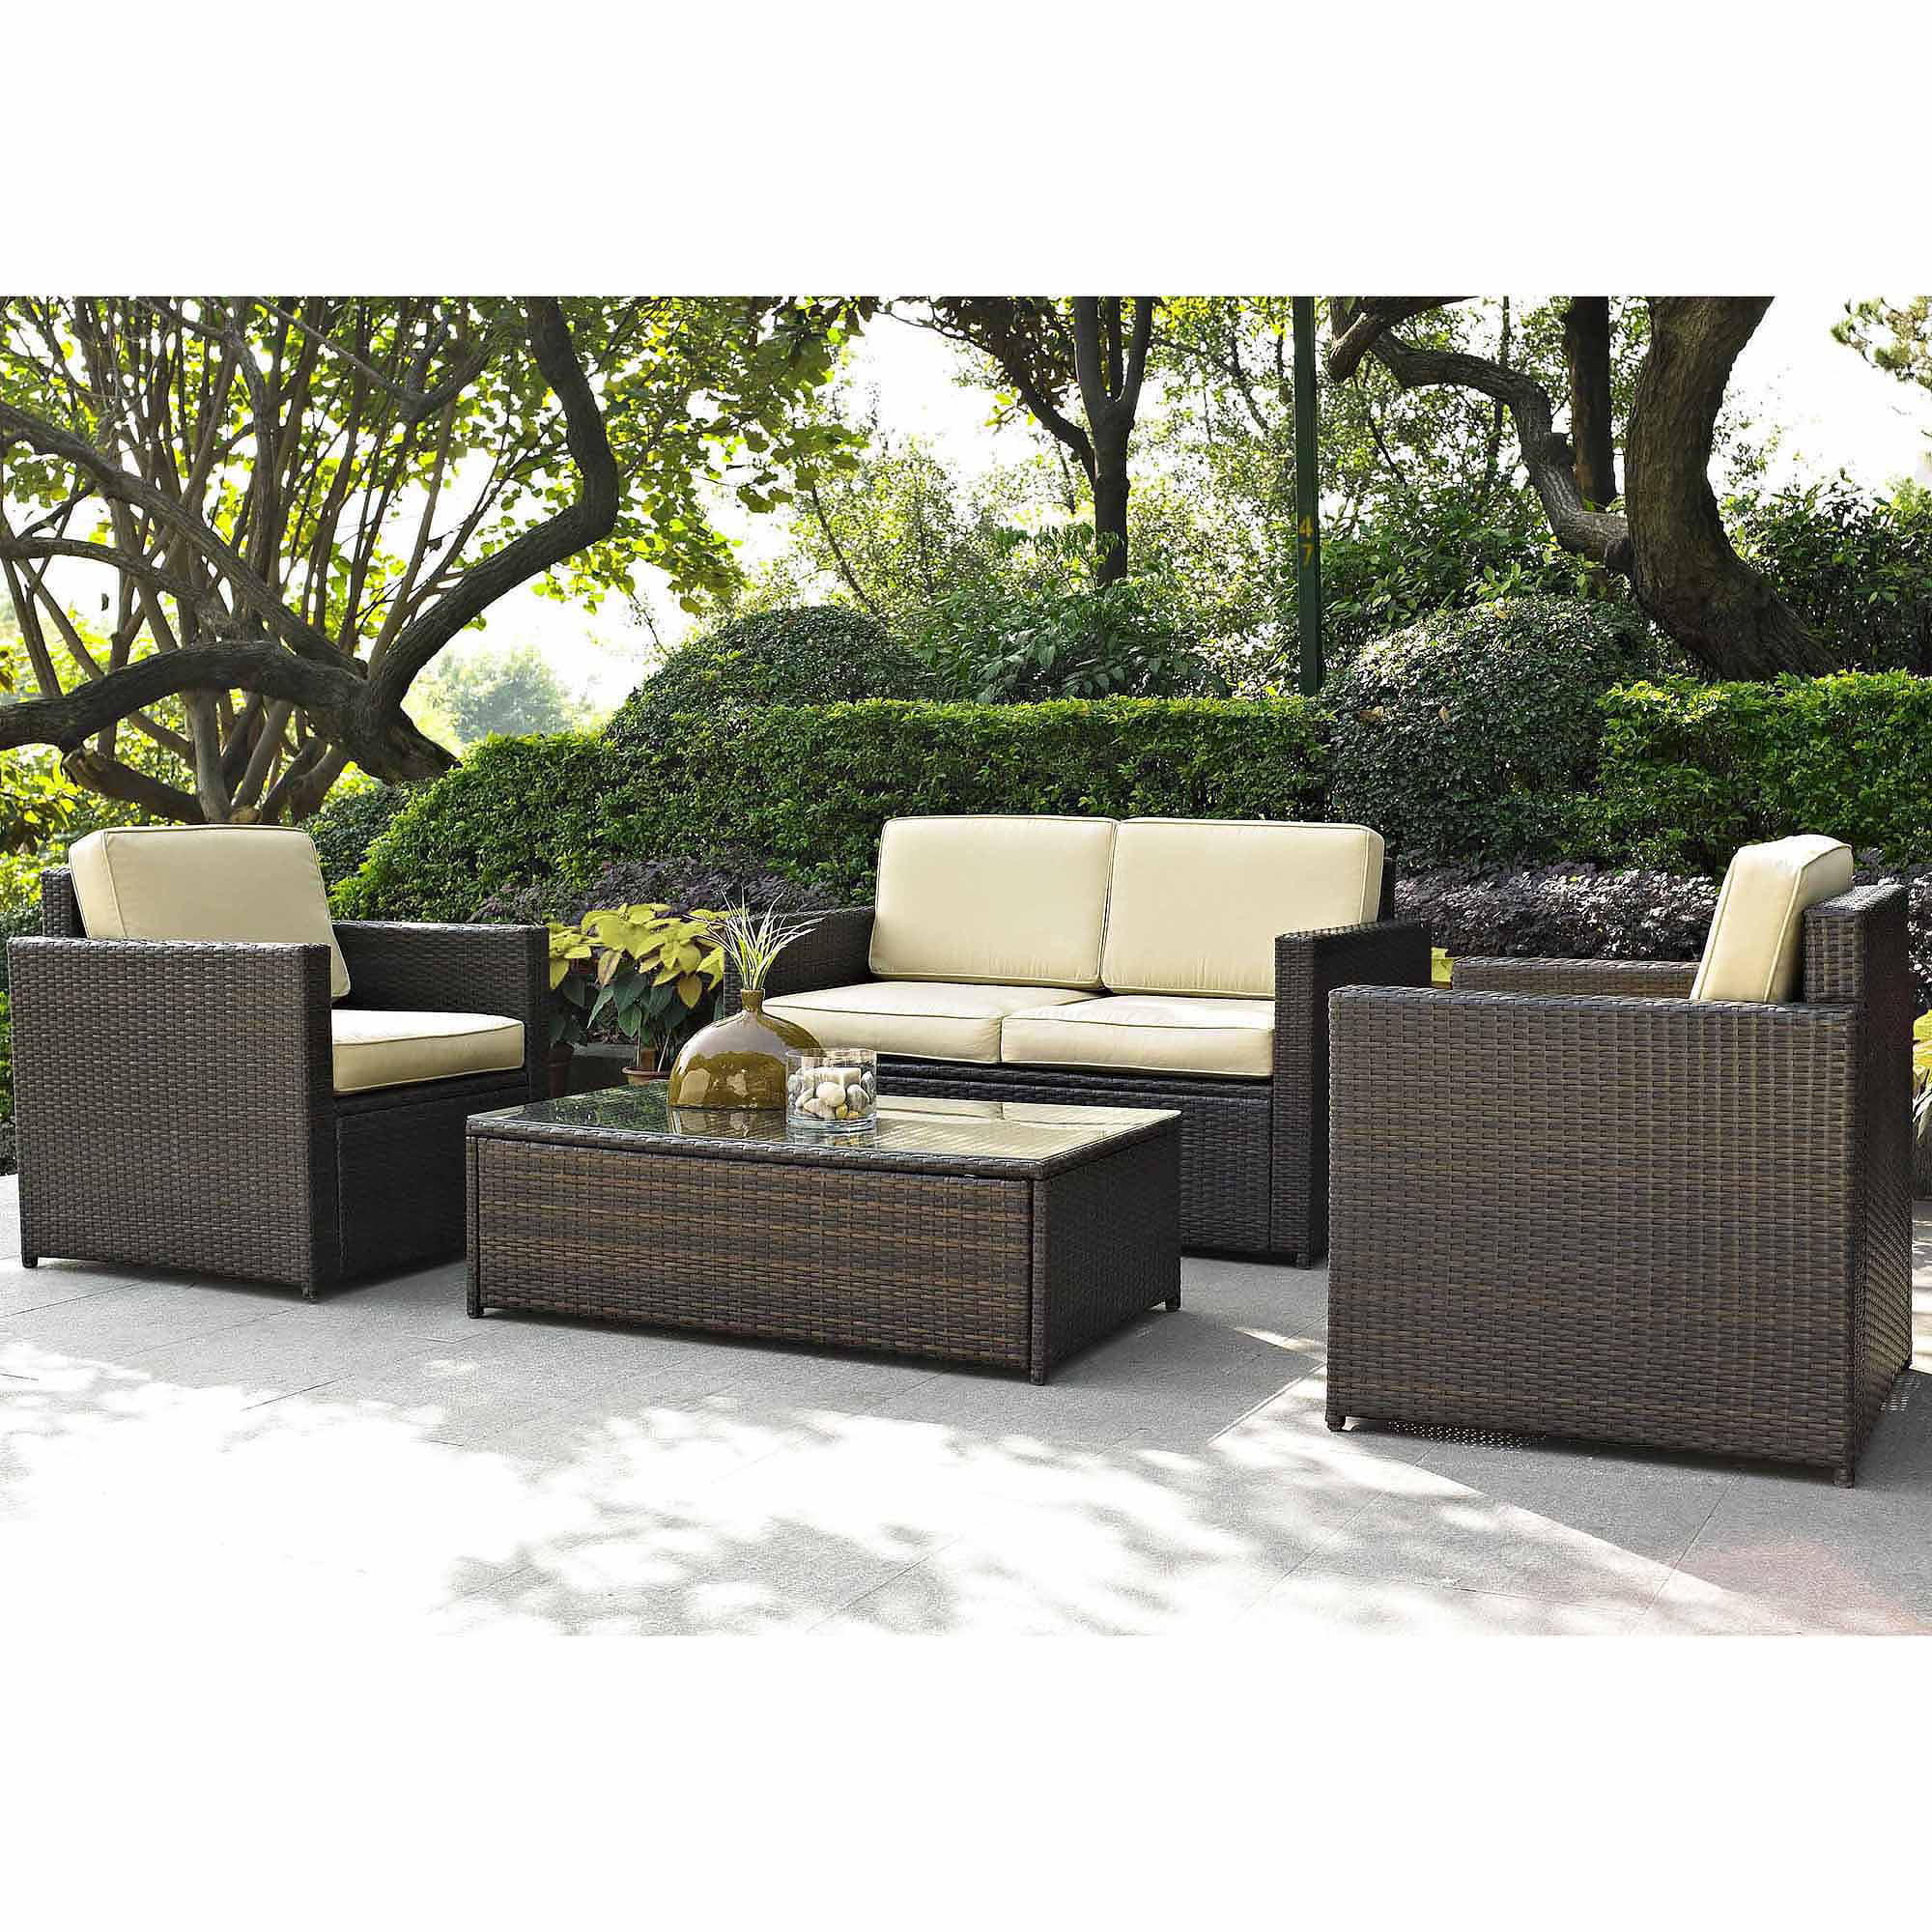 Crosley Furniture Palm Harbor 4-Piece Outdoor Wicker Seating Set